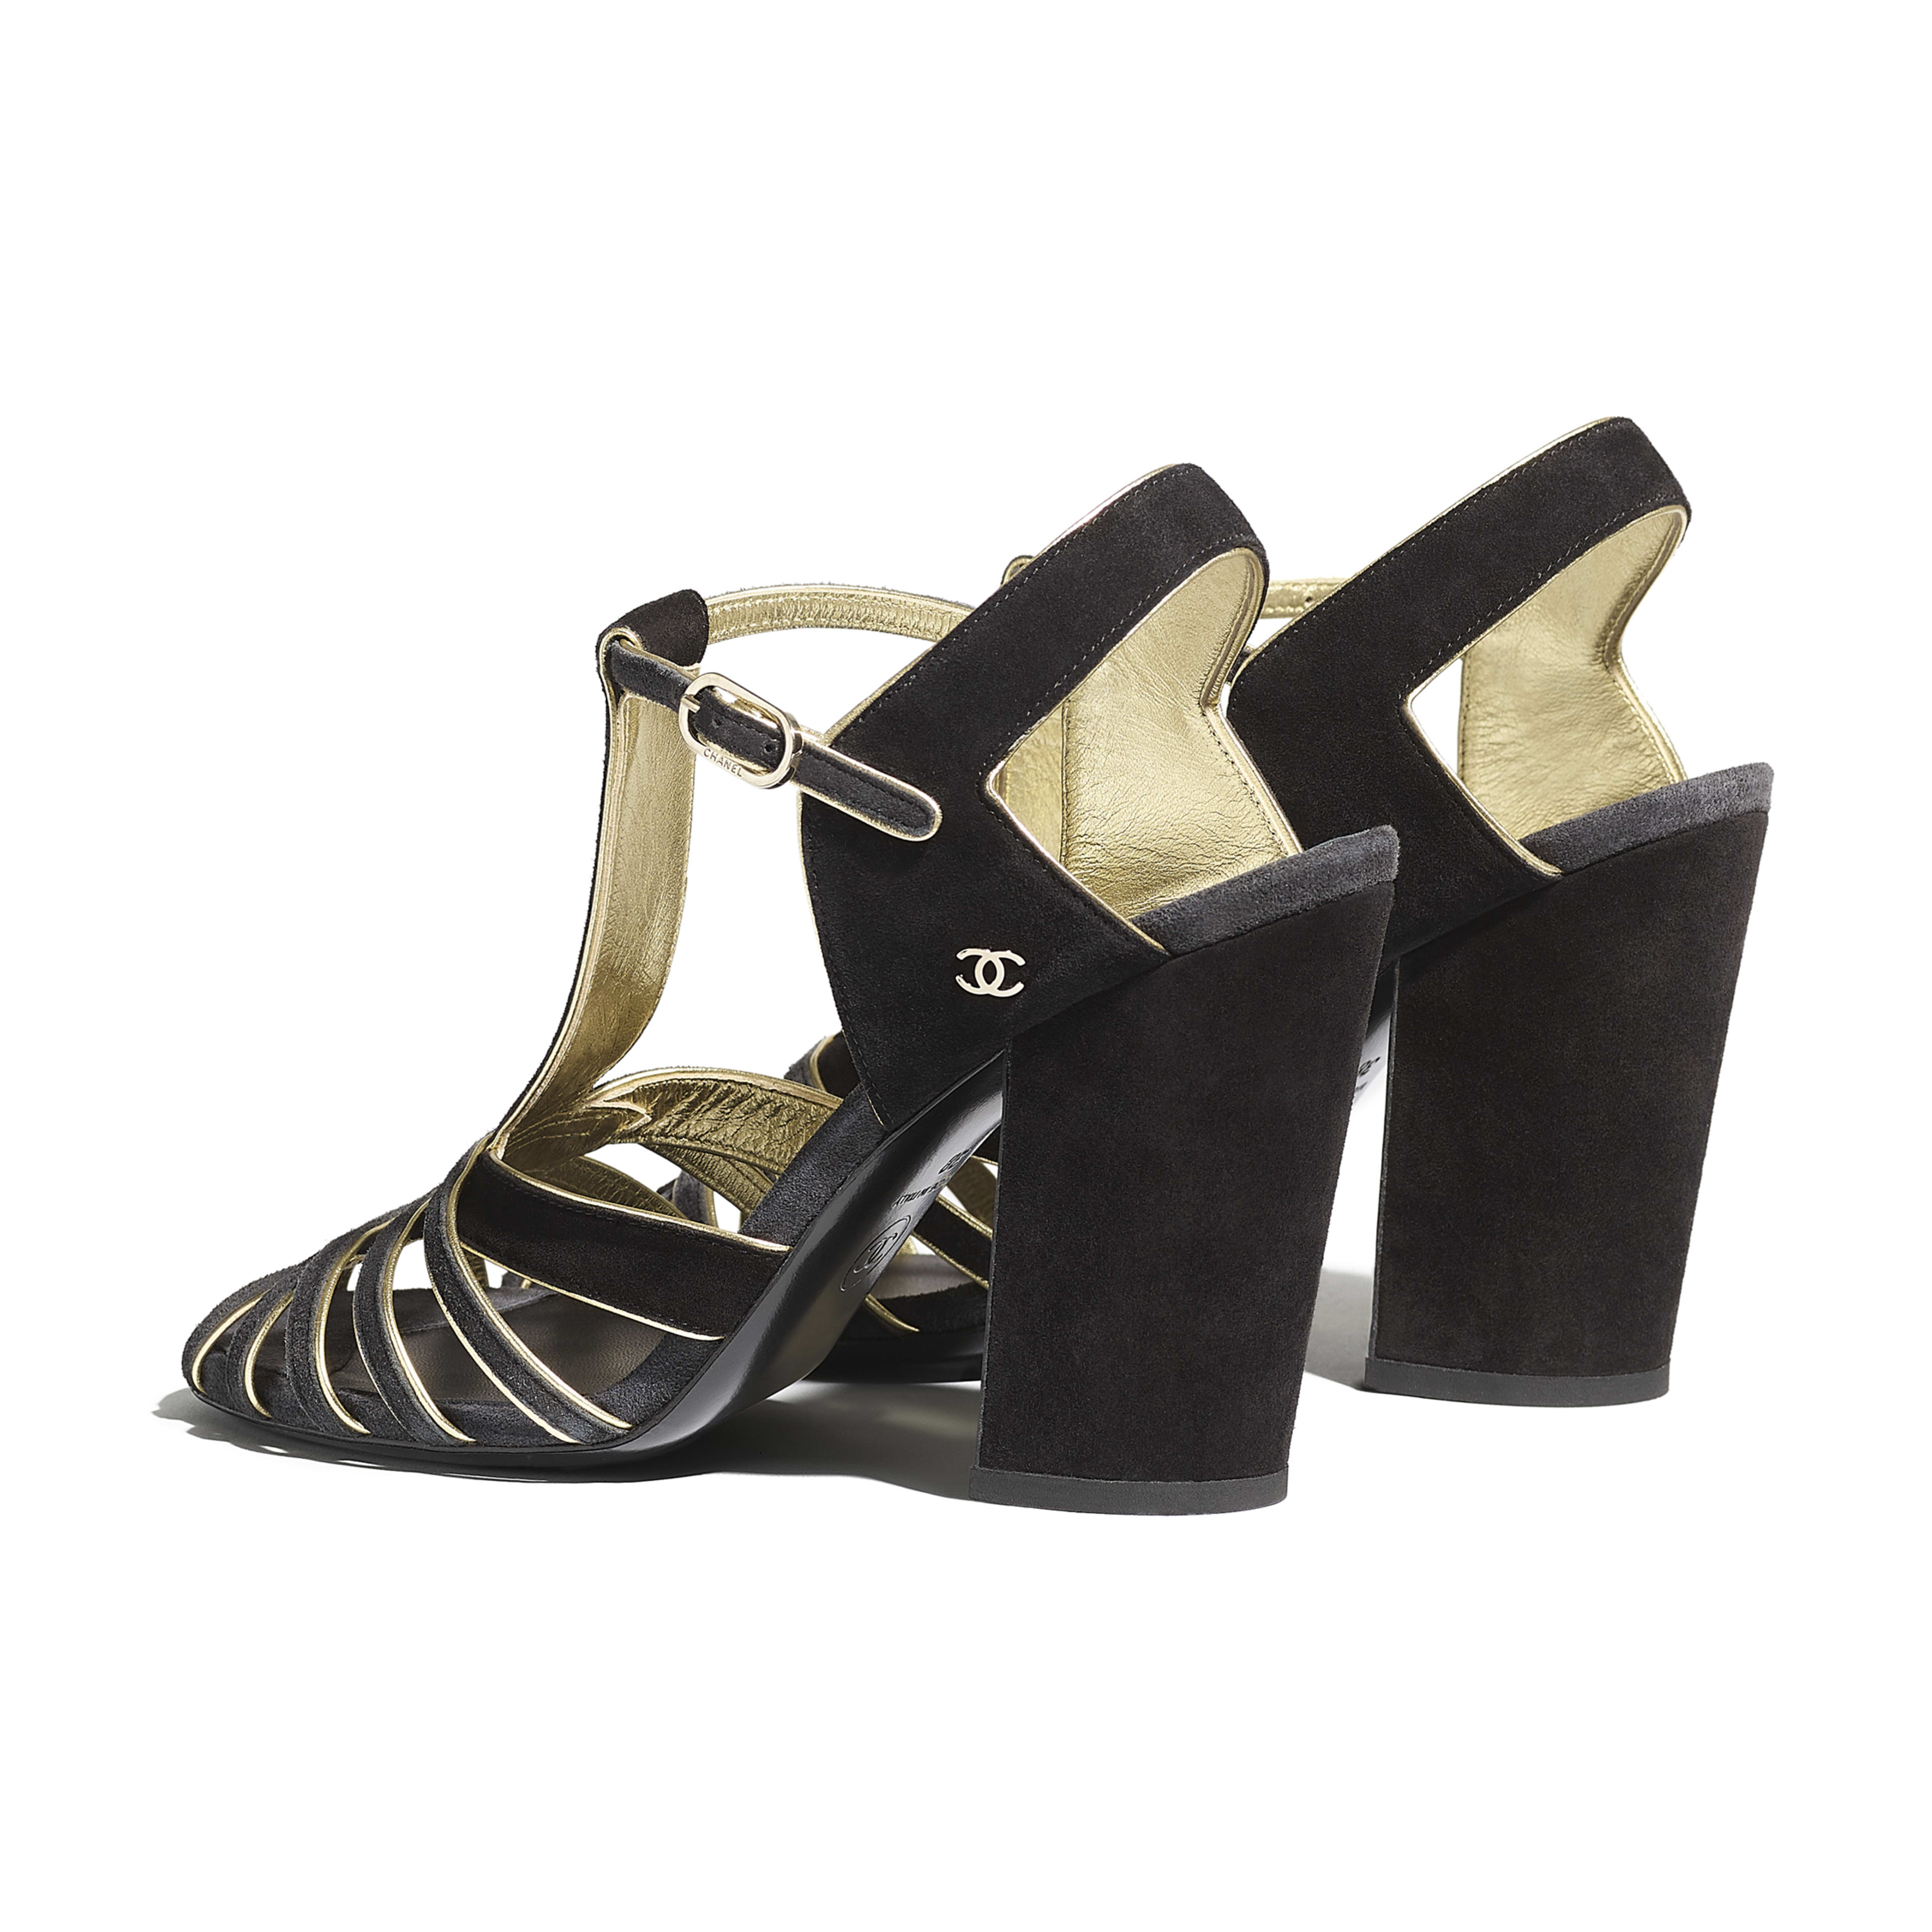 Sandals - Black & Gray - Suede Calfskin - Other view - see full sized version